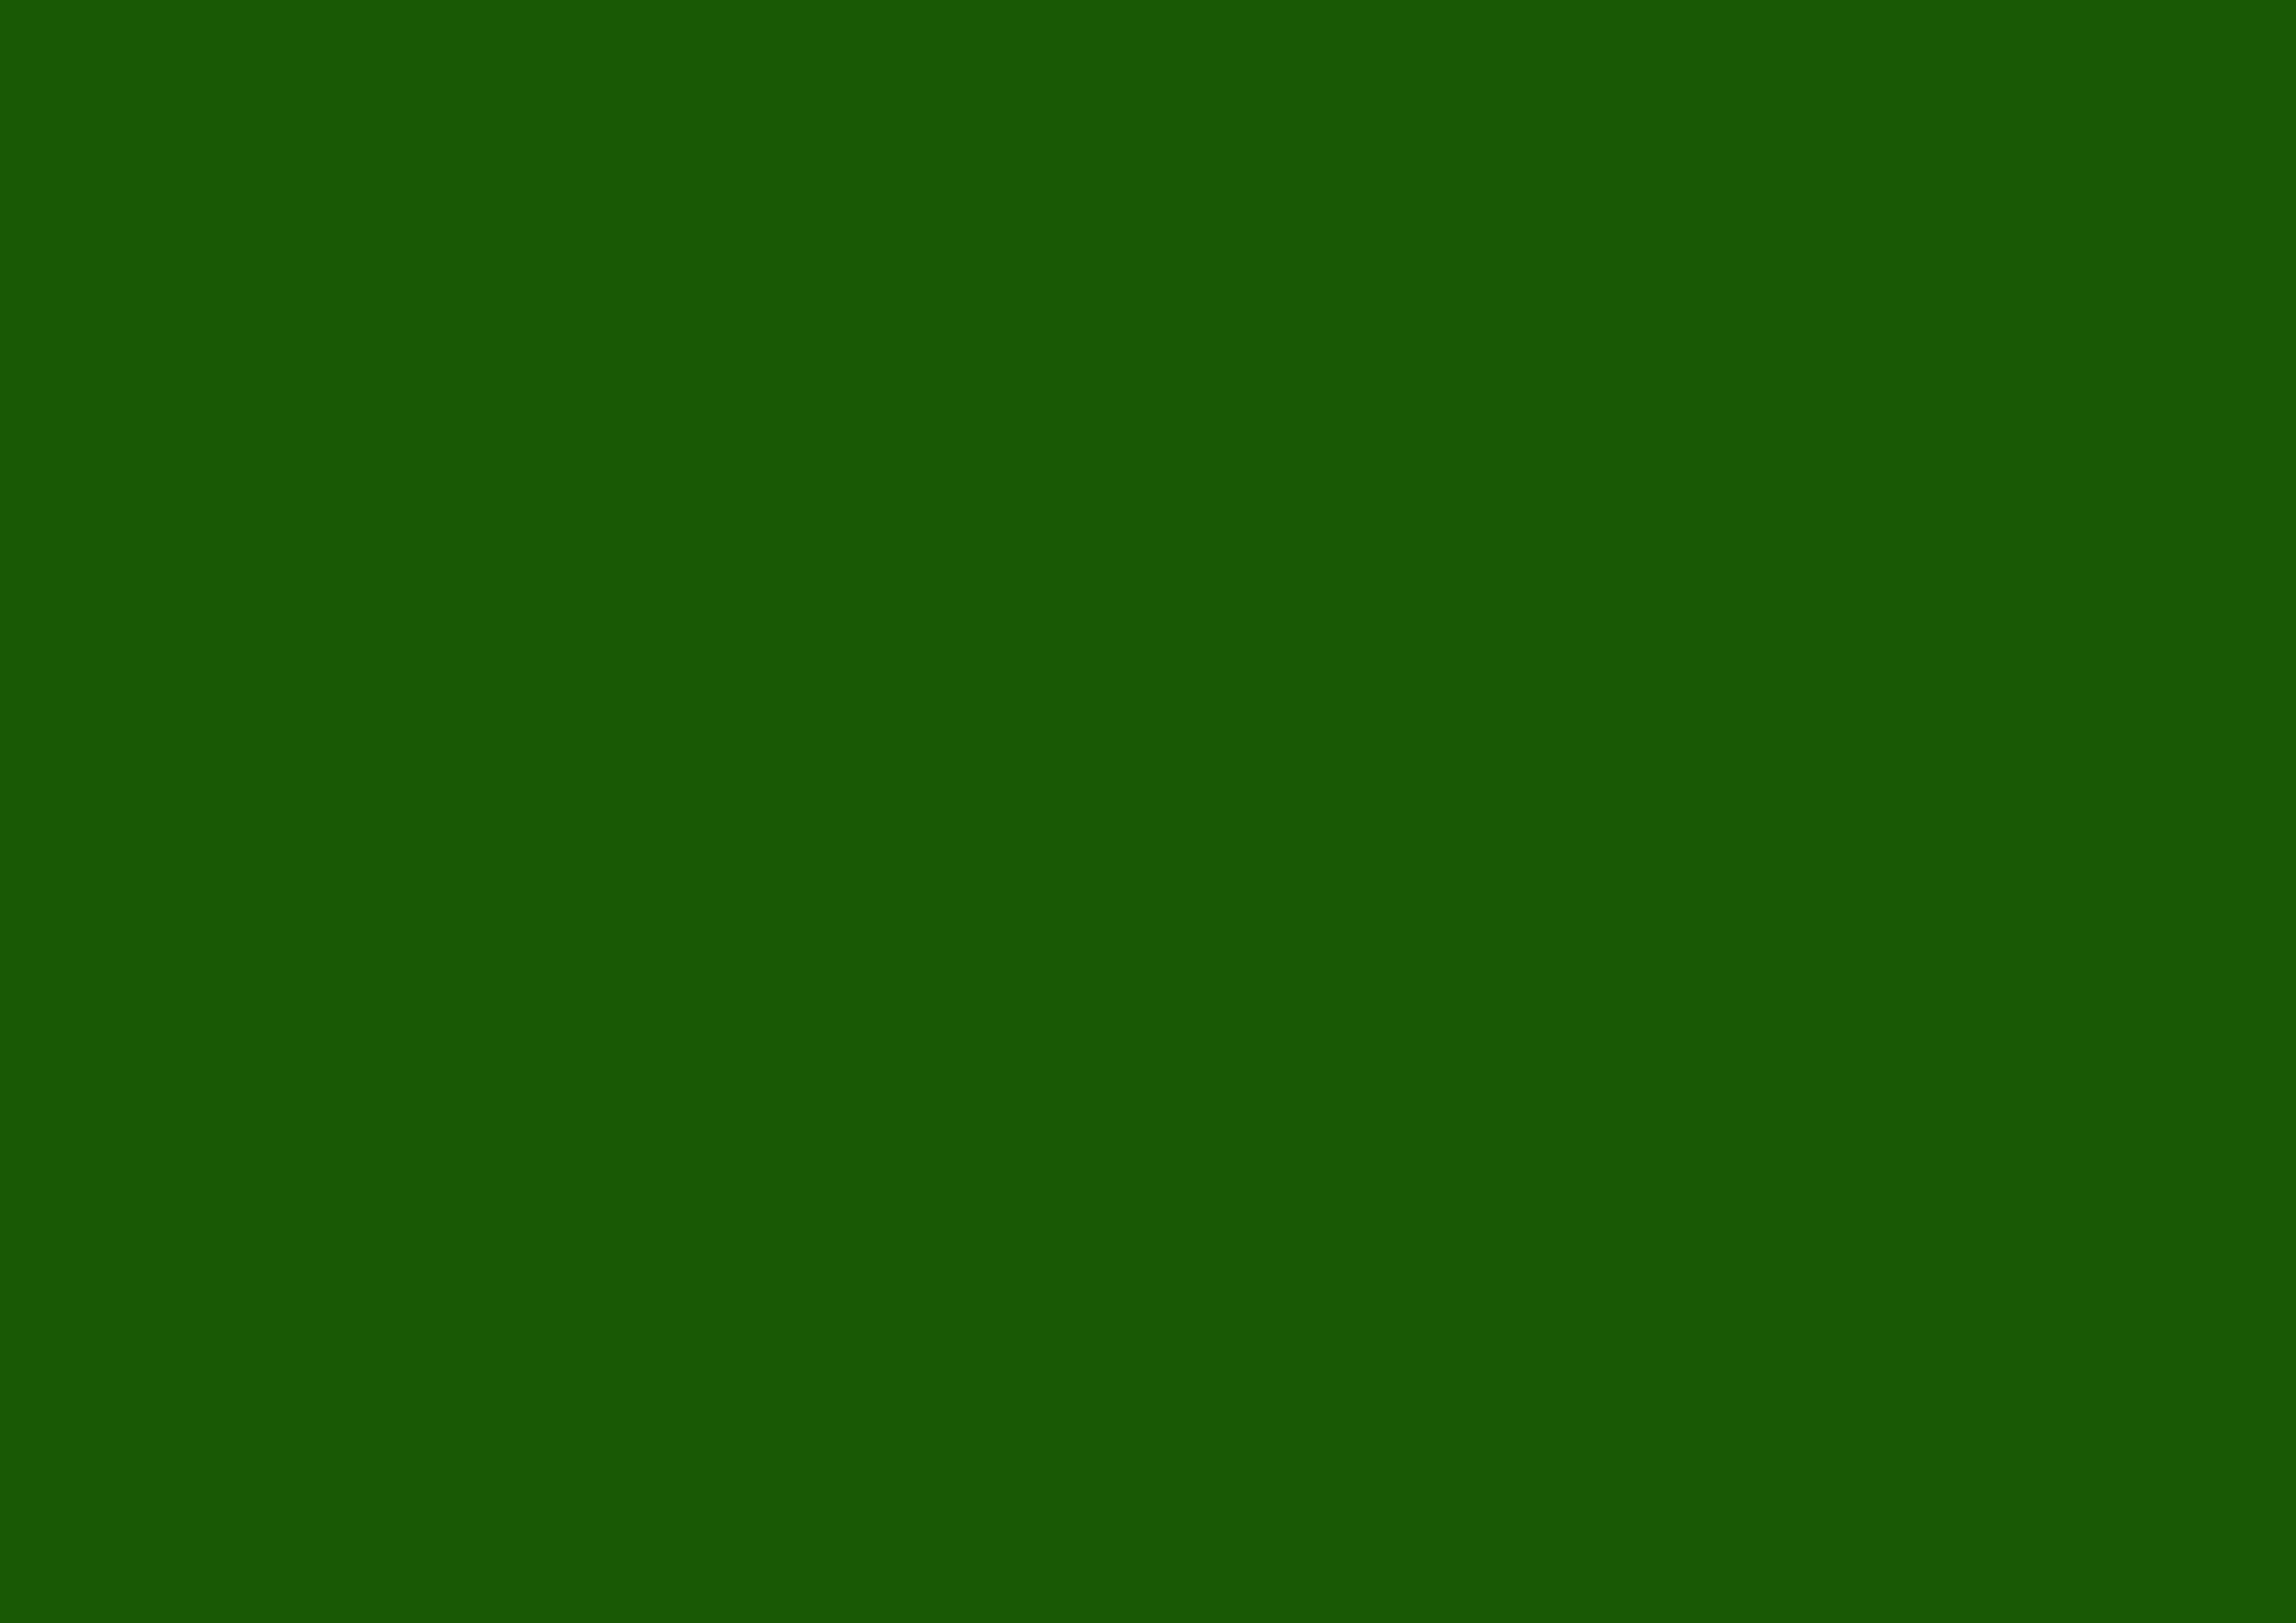 3508x2480 Lincoln Green Solid Color Background